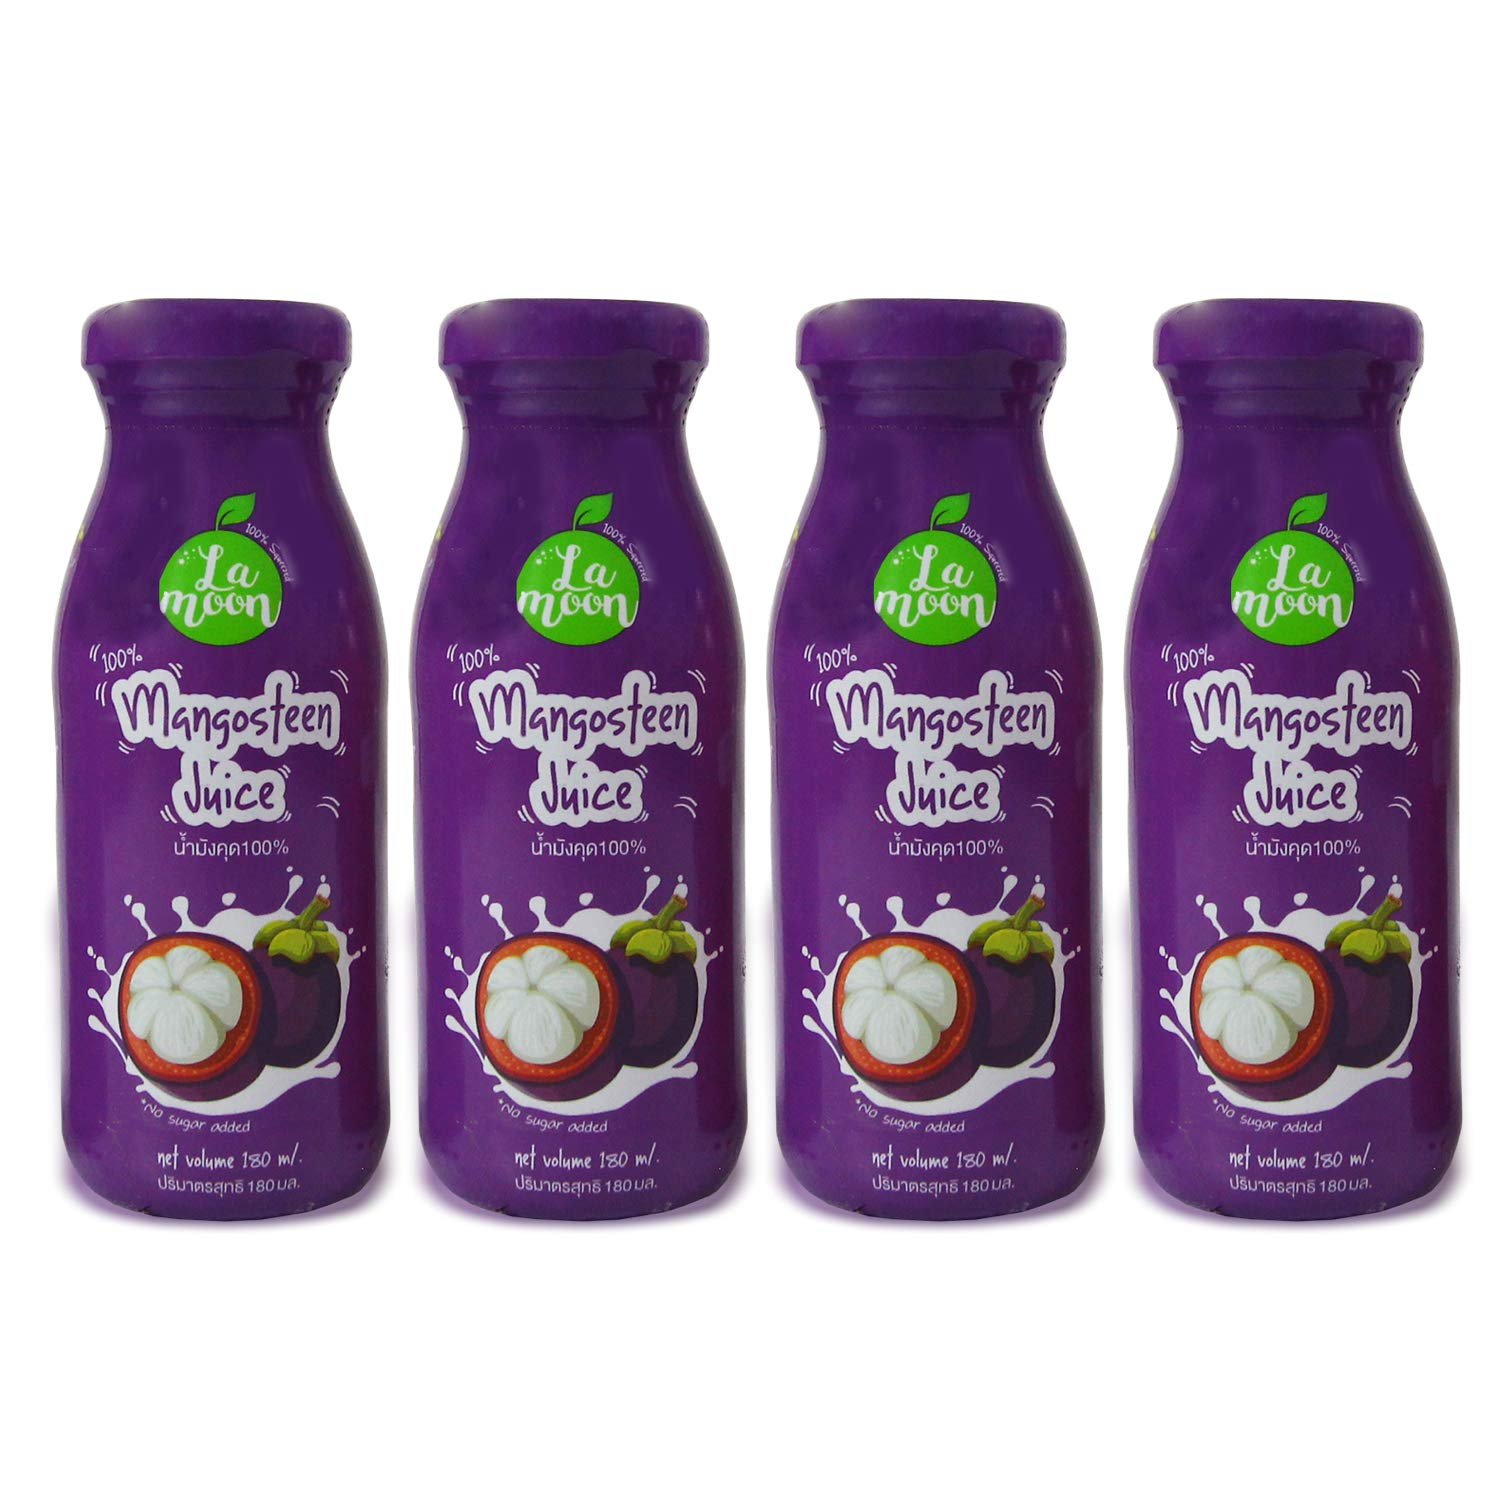 LaMoon Outstanding 100% Squeezed Mangosteen Juice Mangost mL in Bottle 180 Don't miss the campaign